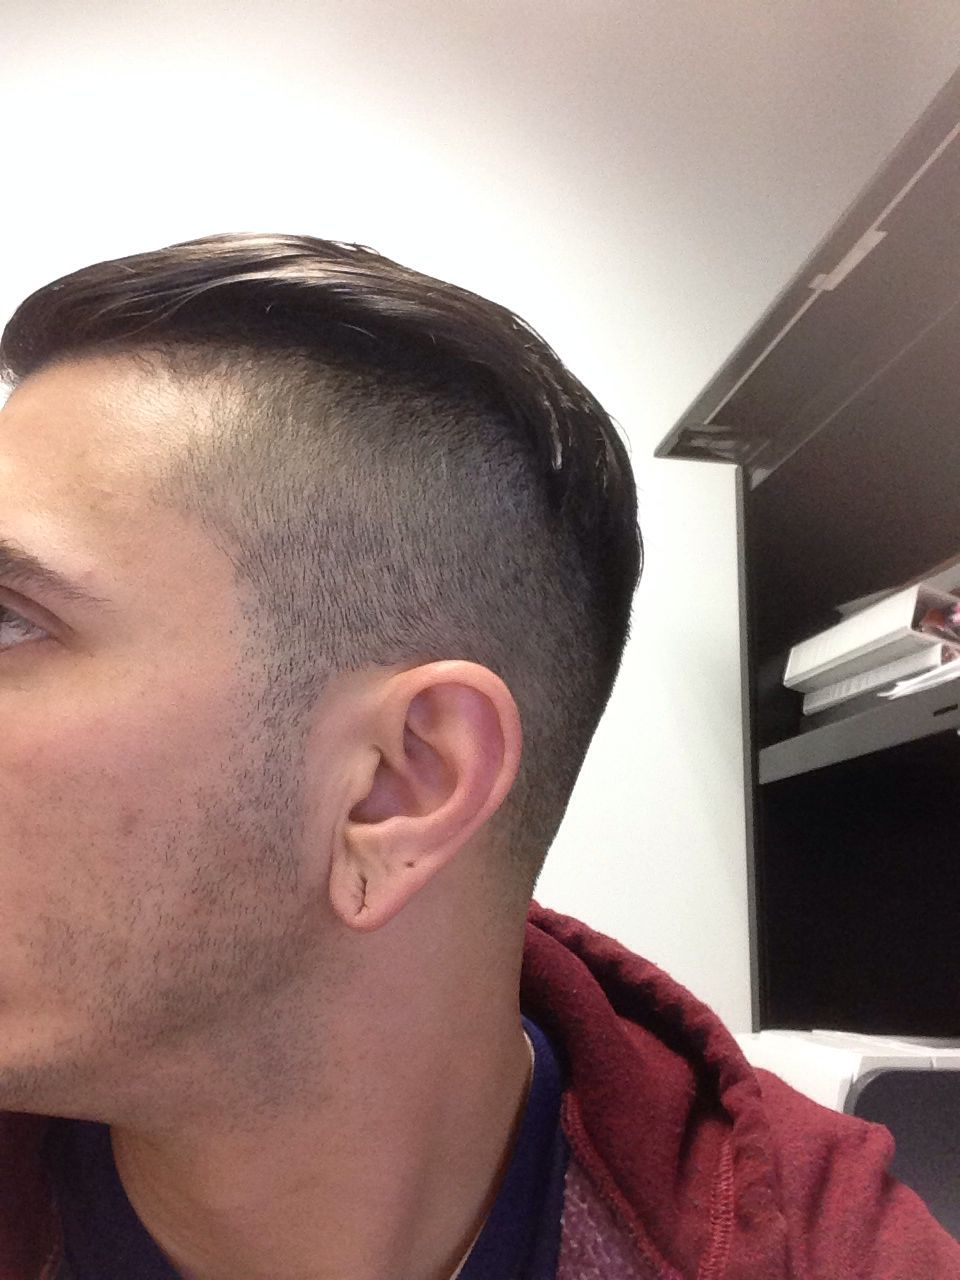 Skin fade to undercut. Peaky Blinders / prohibition ...